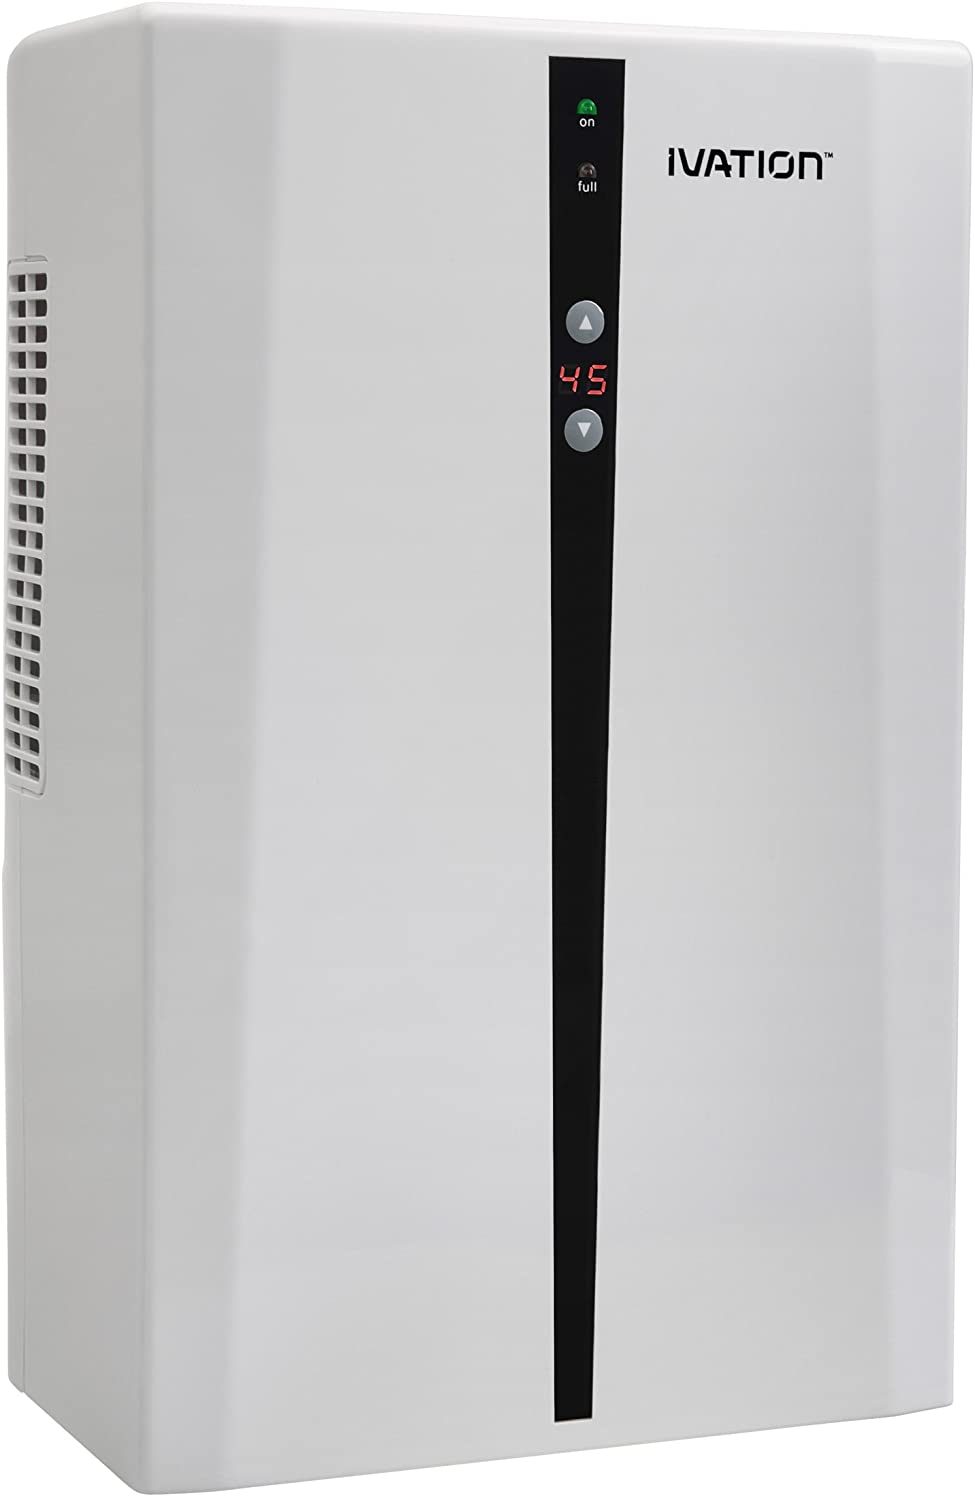 Ivation IVADM45 Powerful Mid-Size Thermo-Electric Intelligent Dehumidifier